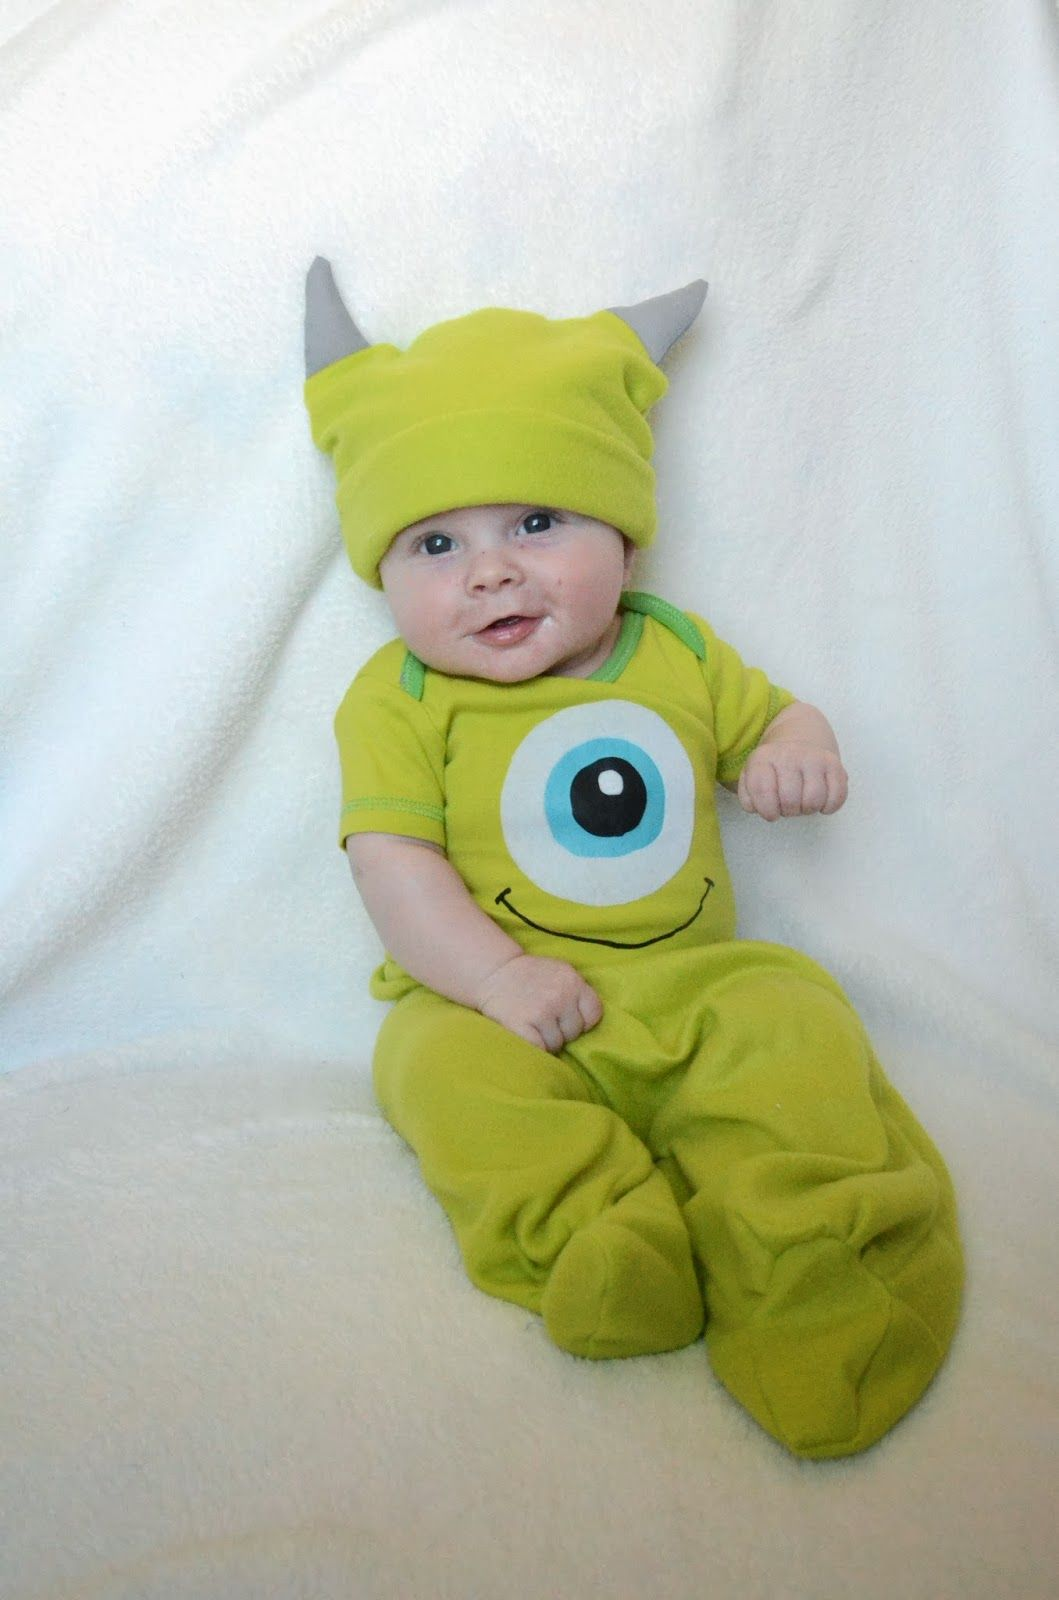 pitcher family adventures mike wazowski costume pin now read later for halloween costume idea mike wazowski costumemonster inc - Monsters Inc Baby Halloween Costumes